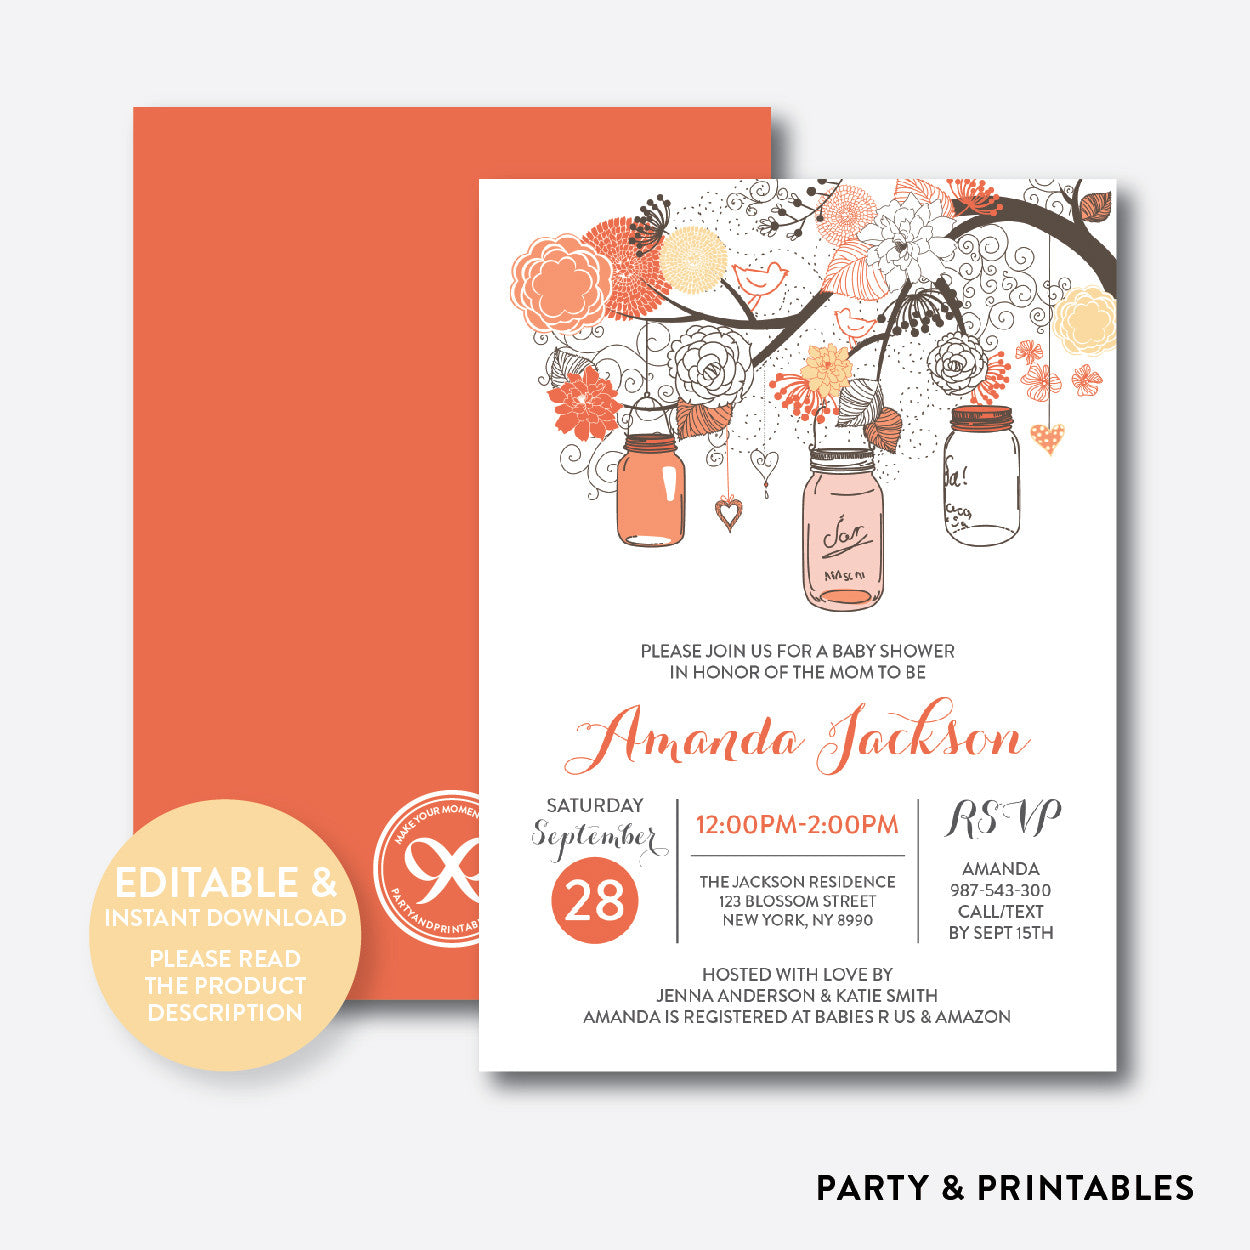 Floral Mason Jar Baby Shower Invitation / Editable / Instant Download (SBS.93), invitation - Party and Printables